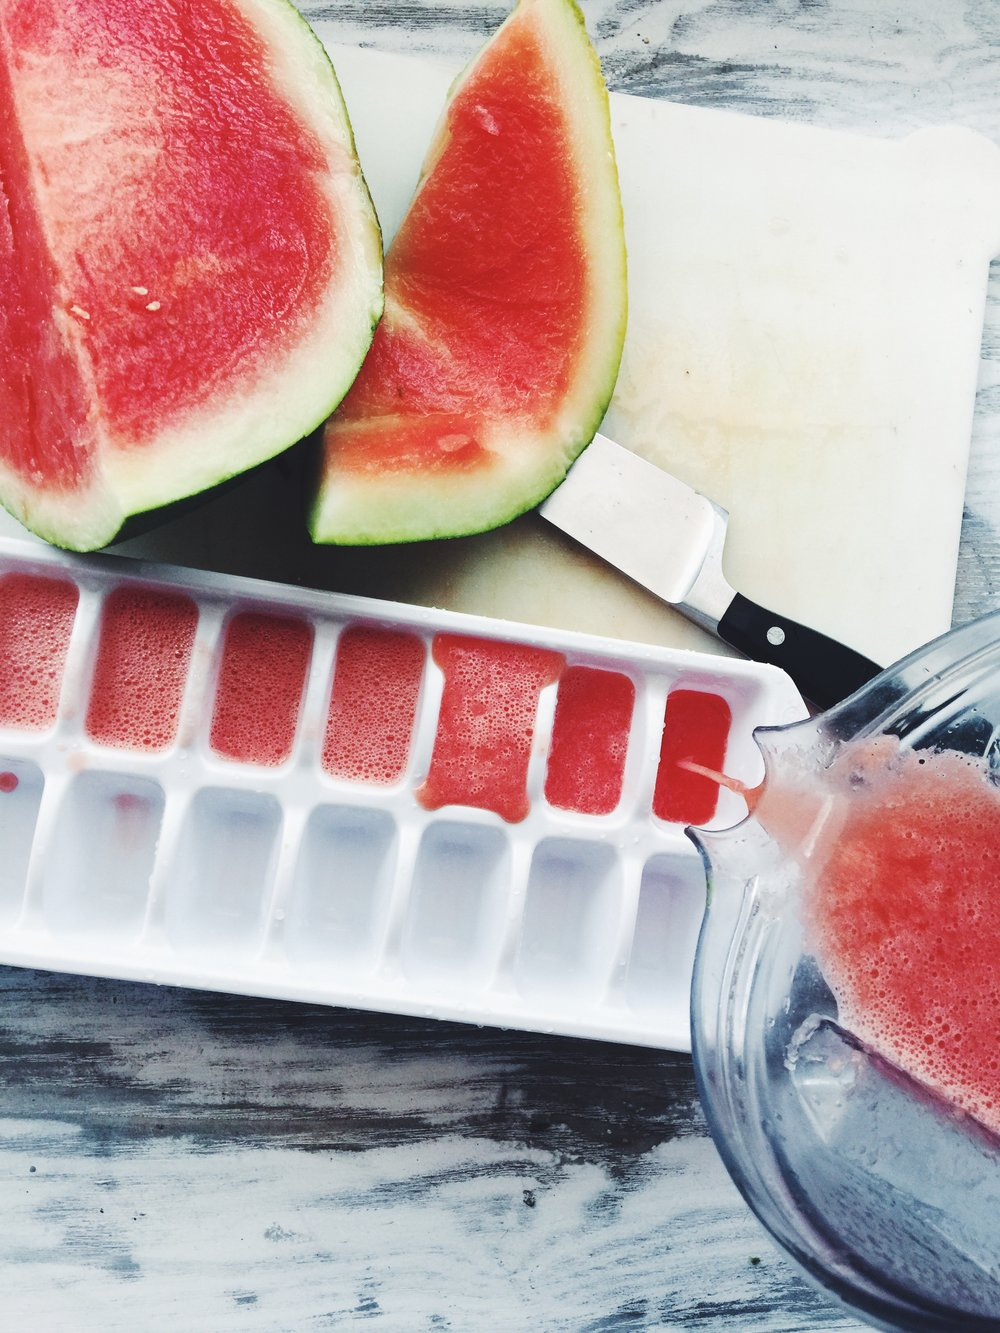 watermelon ice cubes in the making!